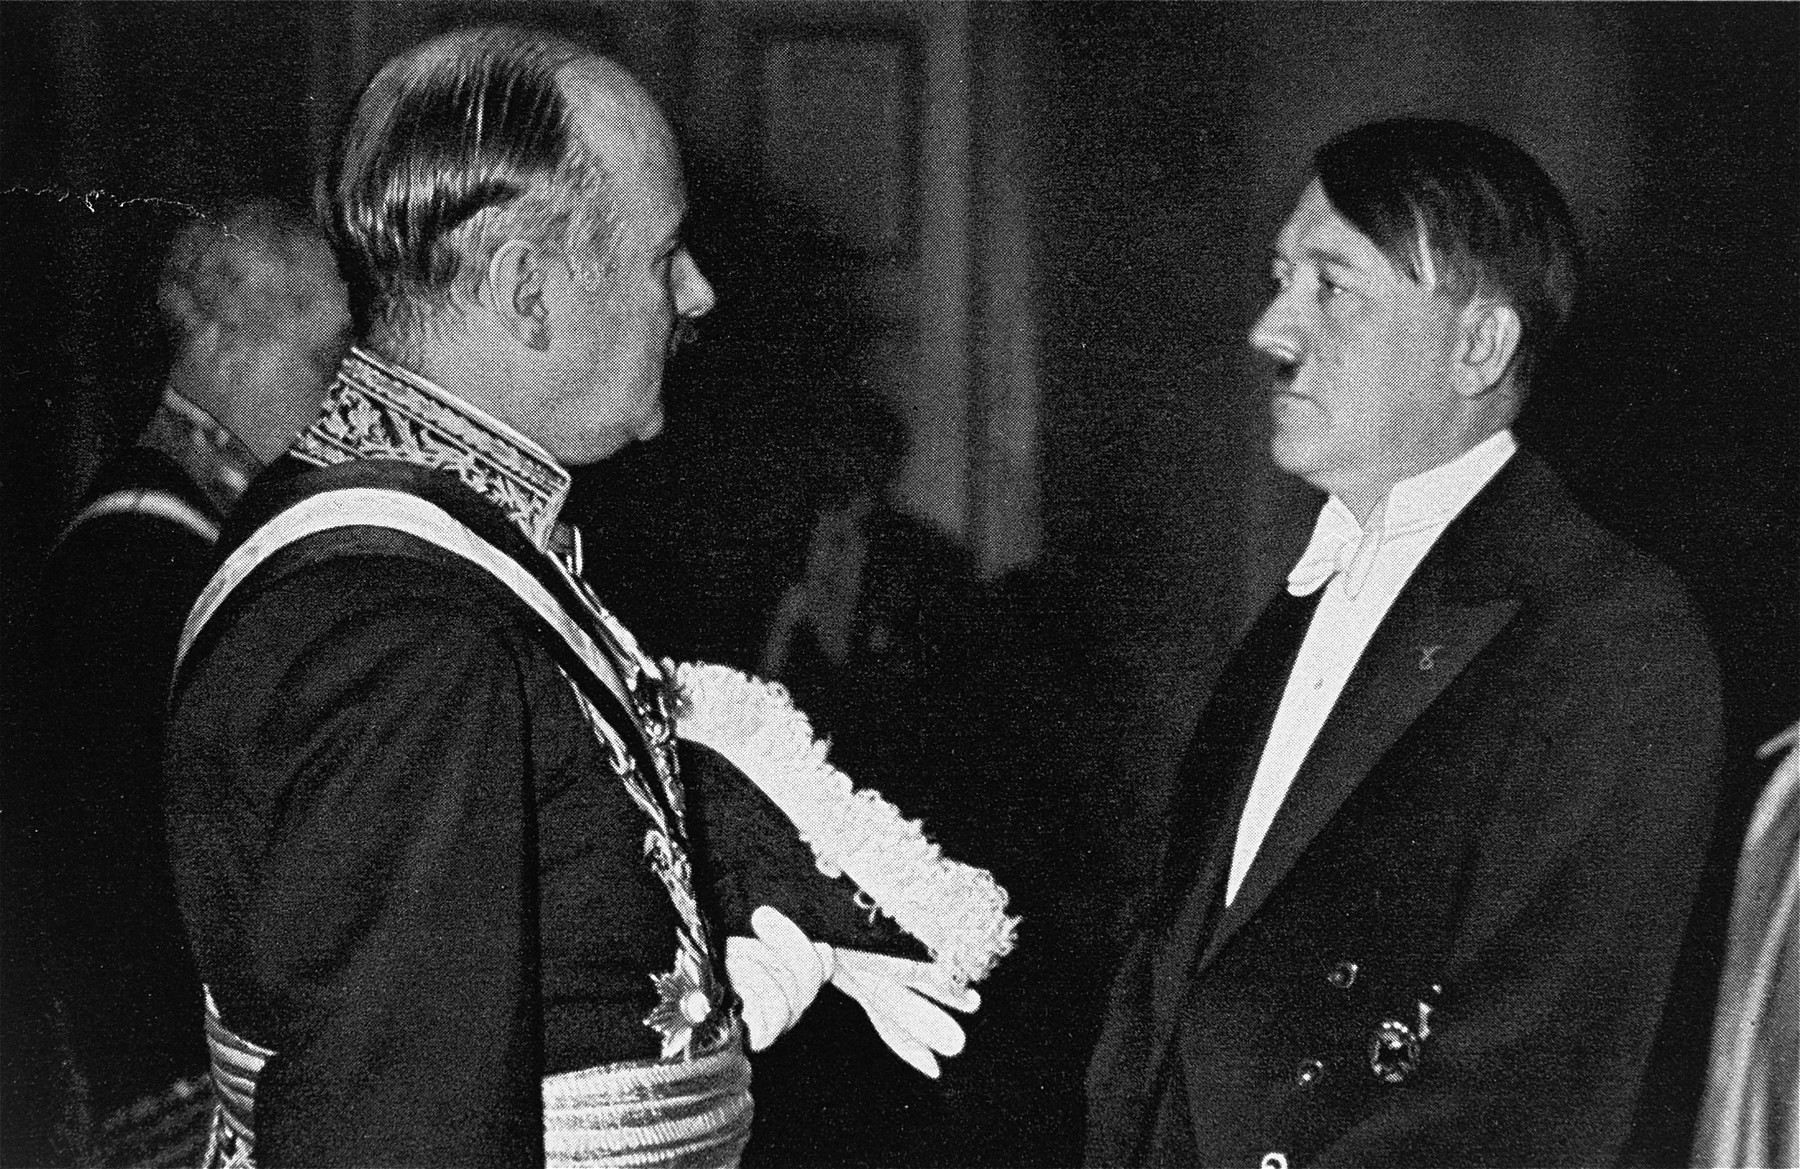 Adolf Hitler converses with French Ambassador Andre Francois-Poncet at a New Year's Eve reception.